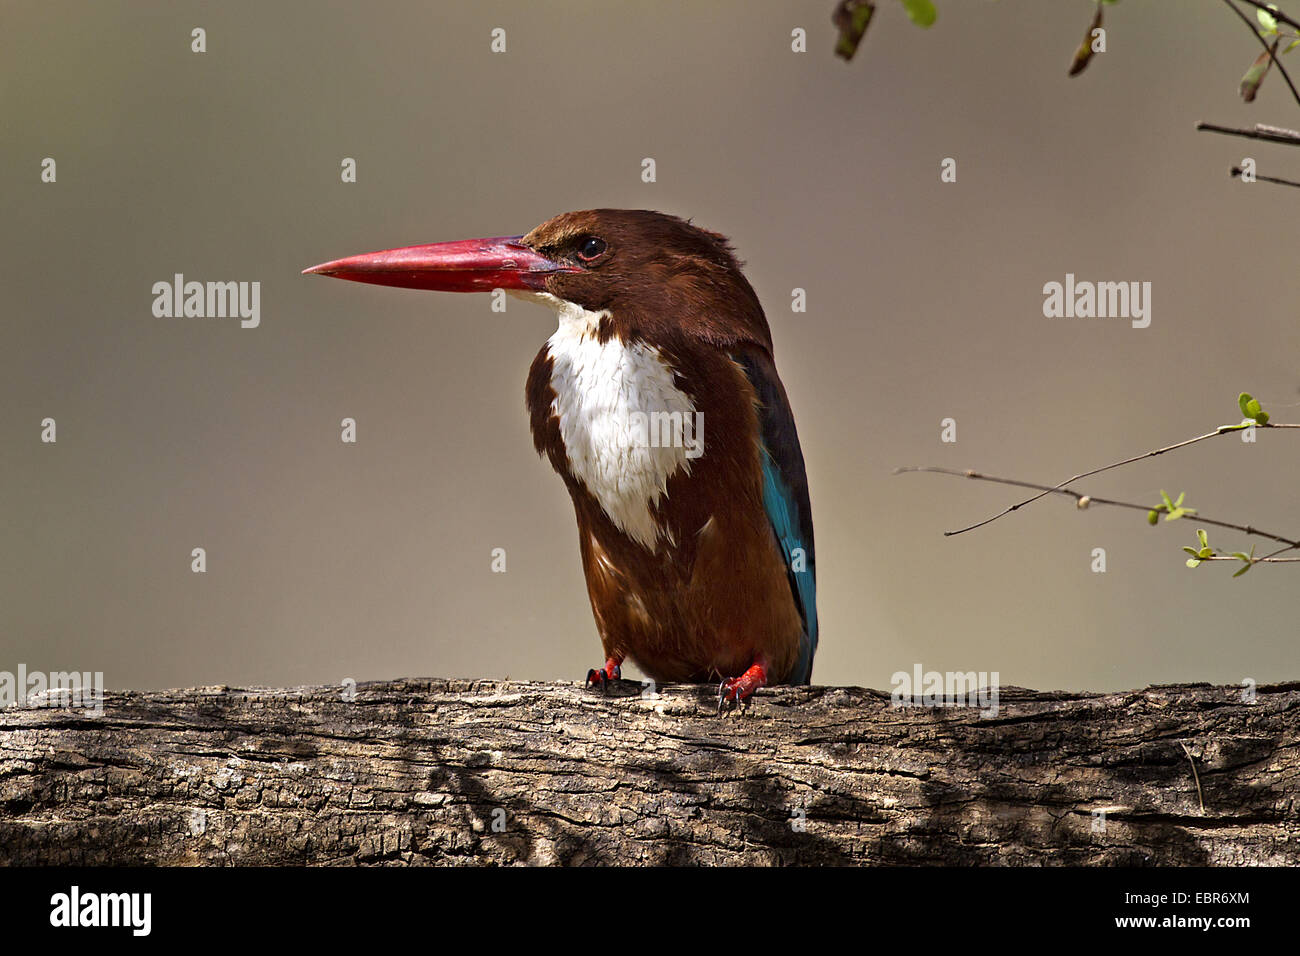 white-throated kingfisher, White-breasted Kingfisher, River Kingfisher (Halcyon smyrnensis), sitting on a branch, - Stock Image